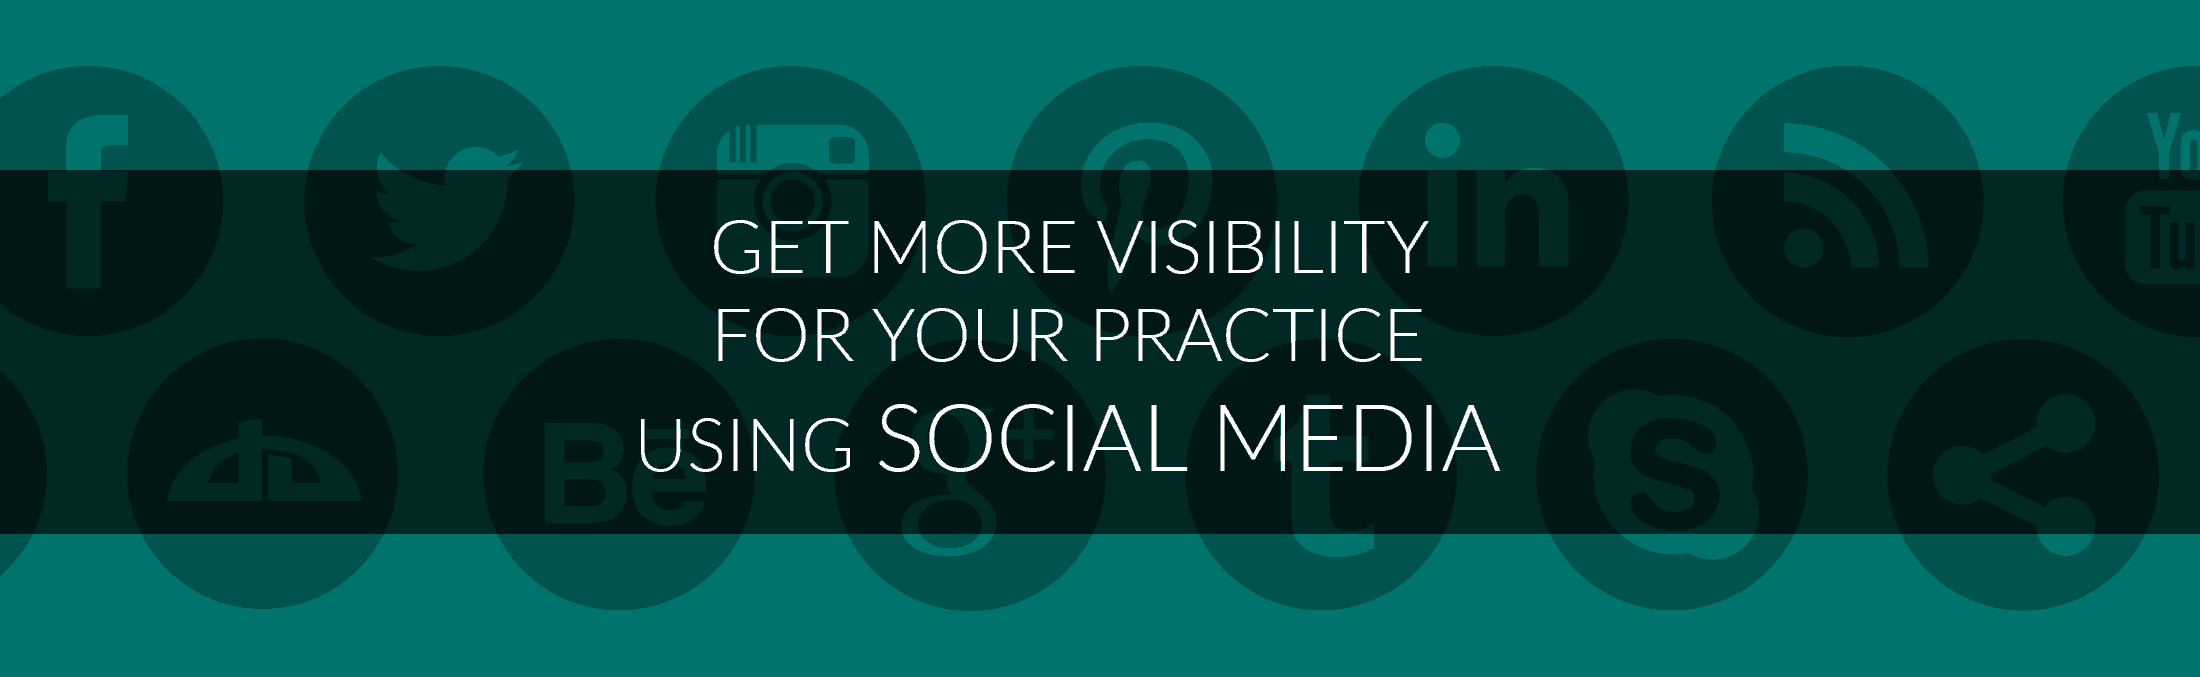 How to get more visibility for your practice using social media